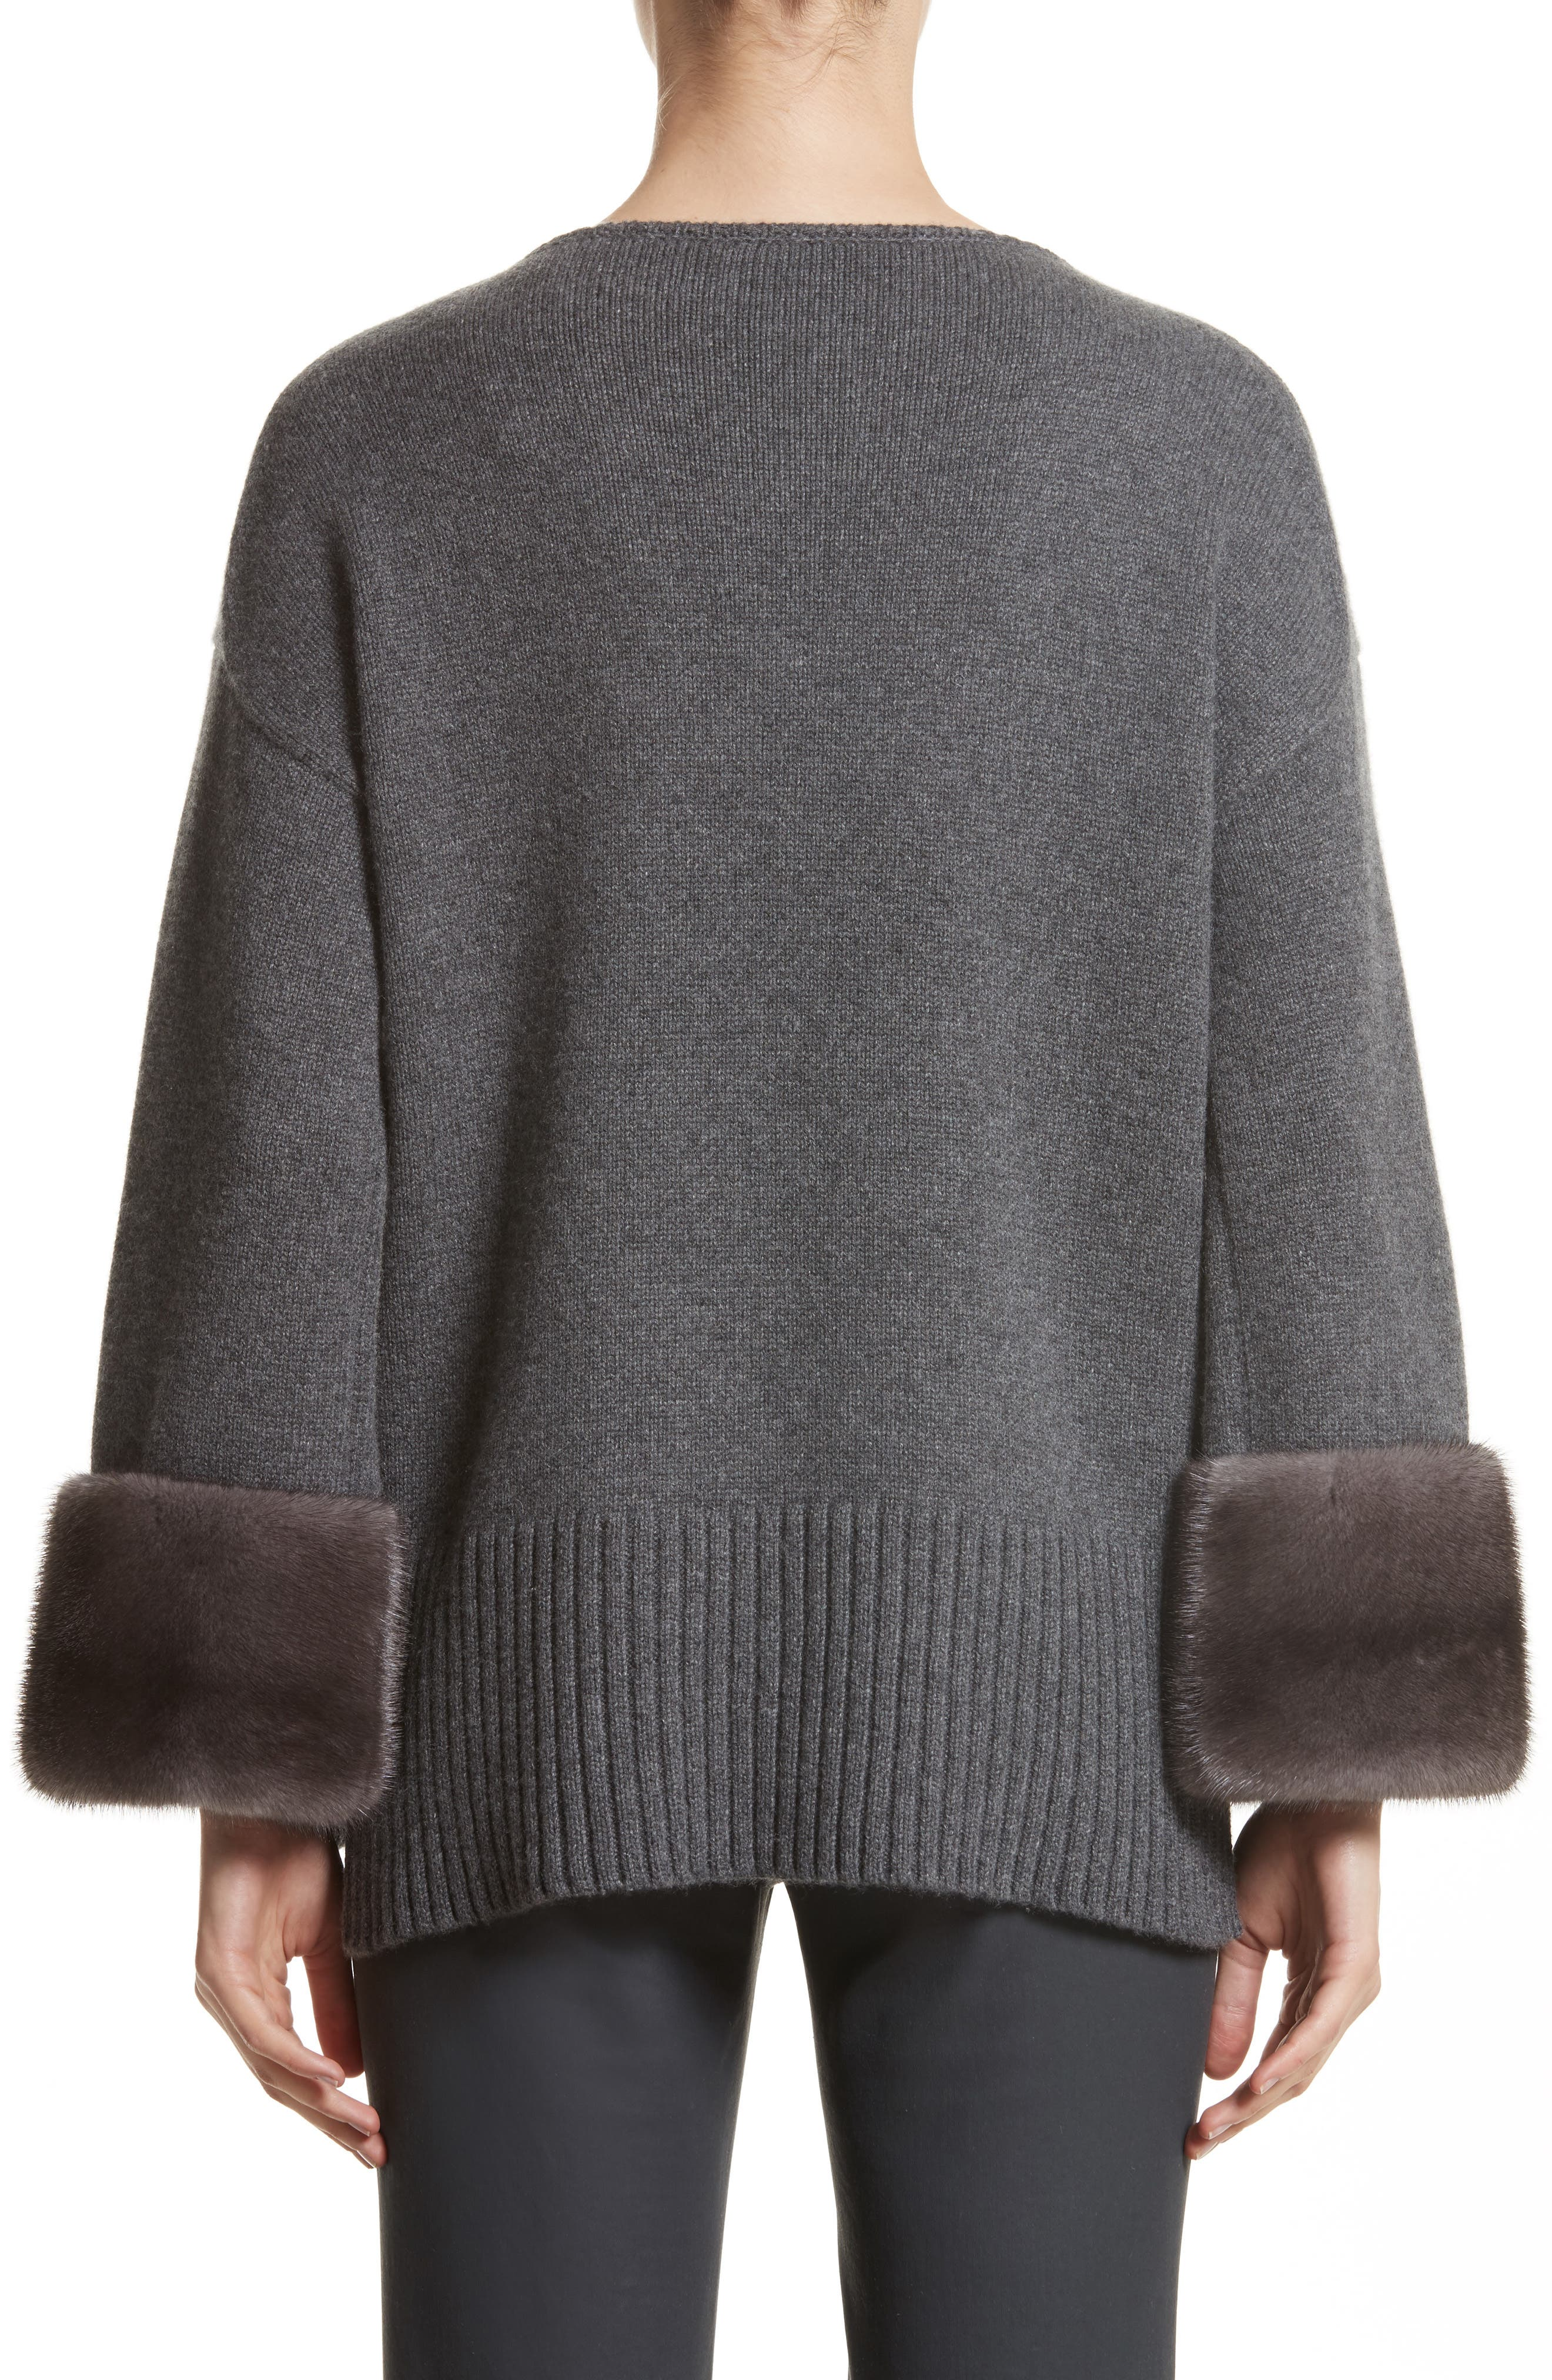 Alternate Image 3  - Lafayette 148 New York Cashmere Sweater with Genuine Mink Fur Cuffs